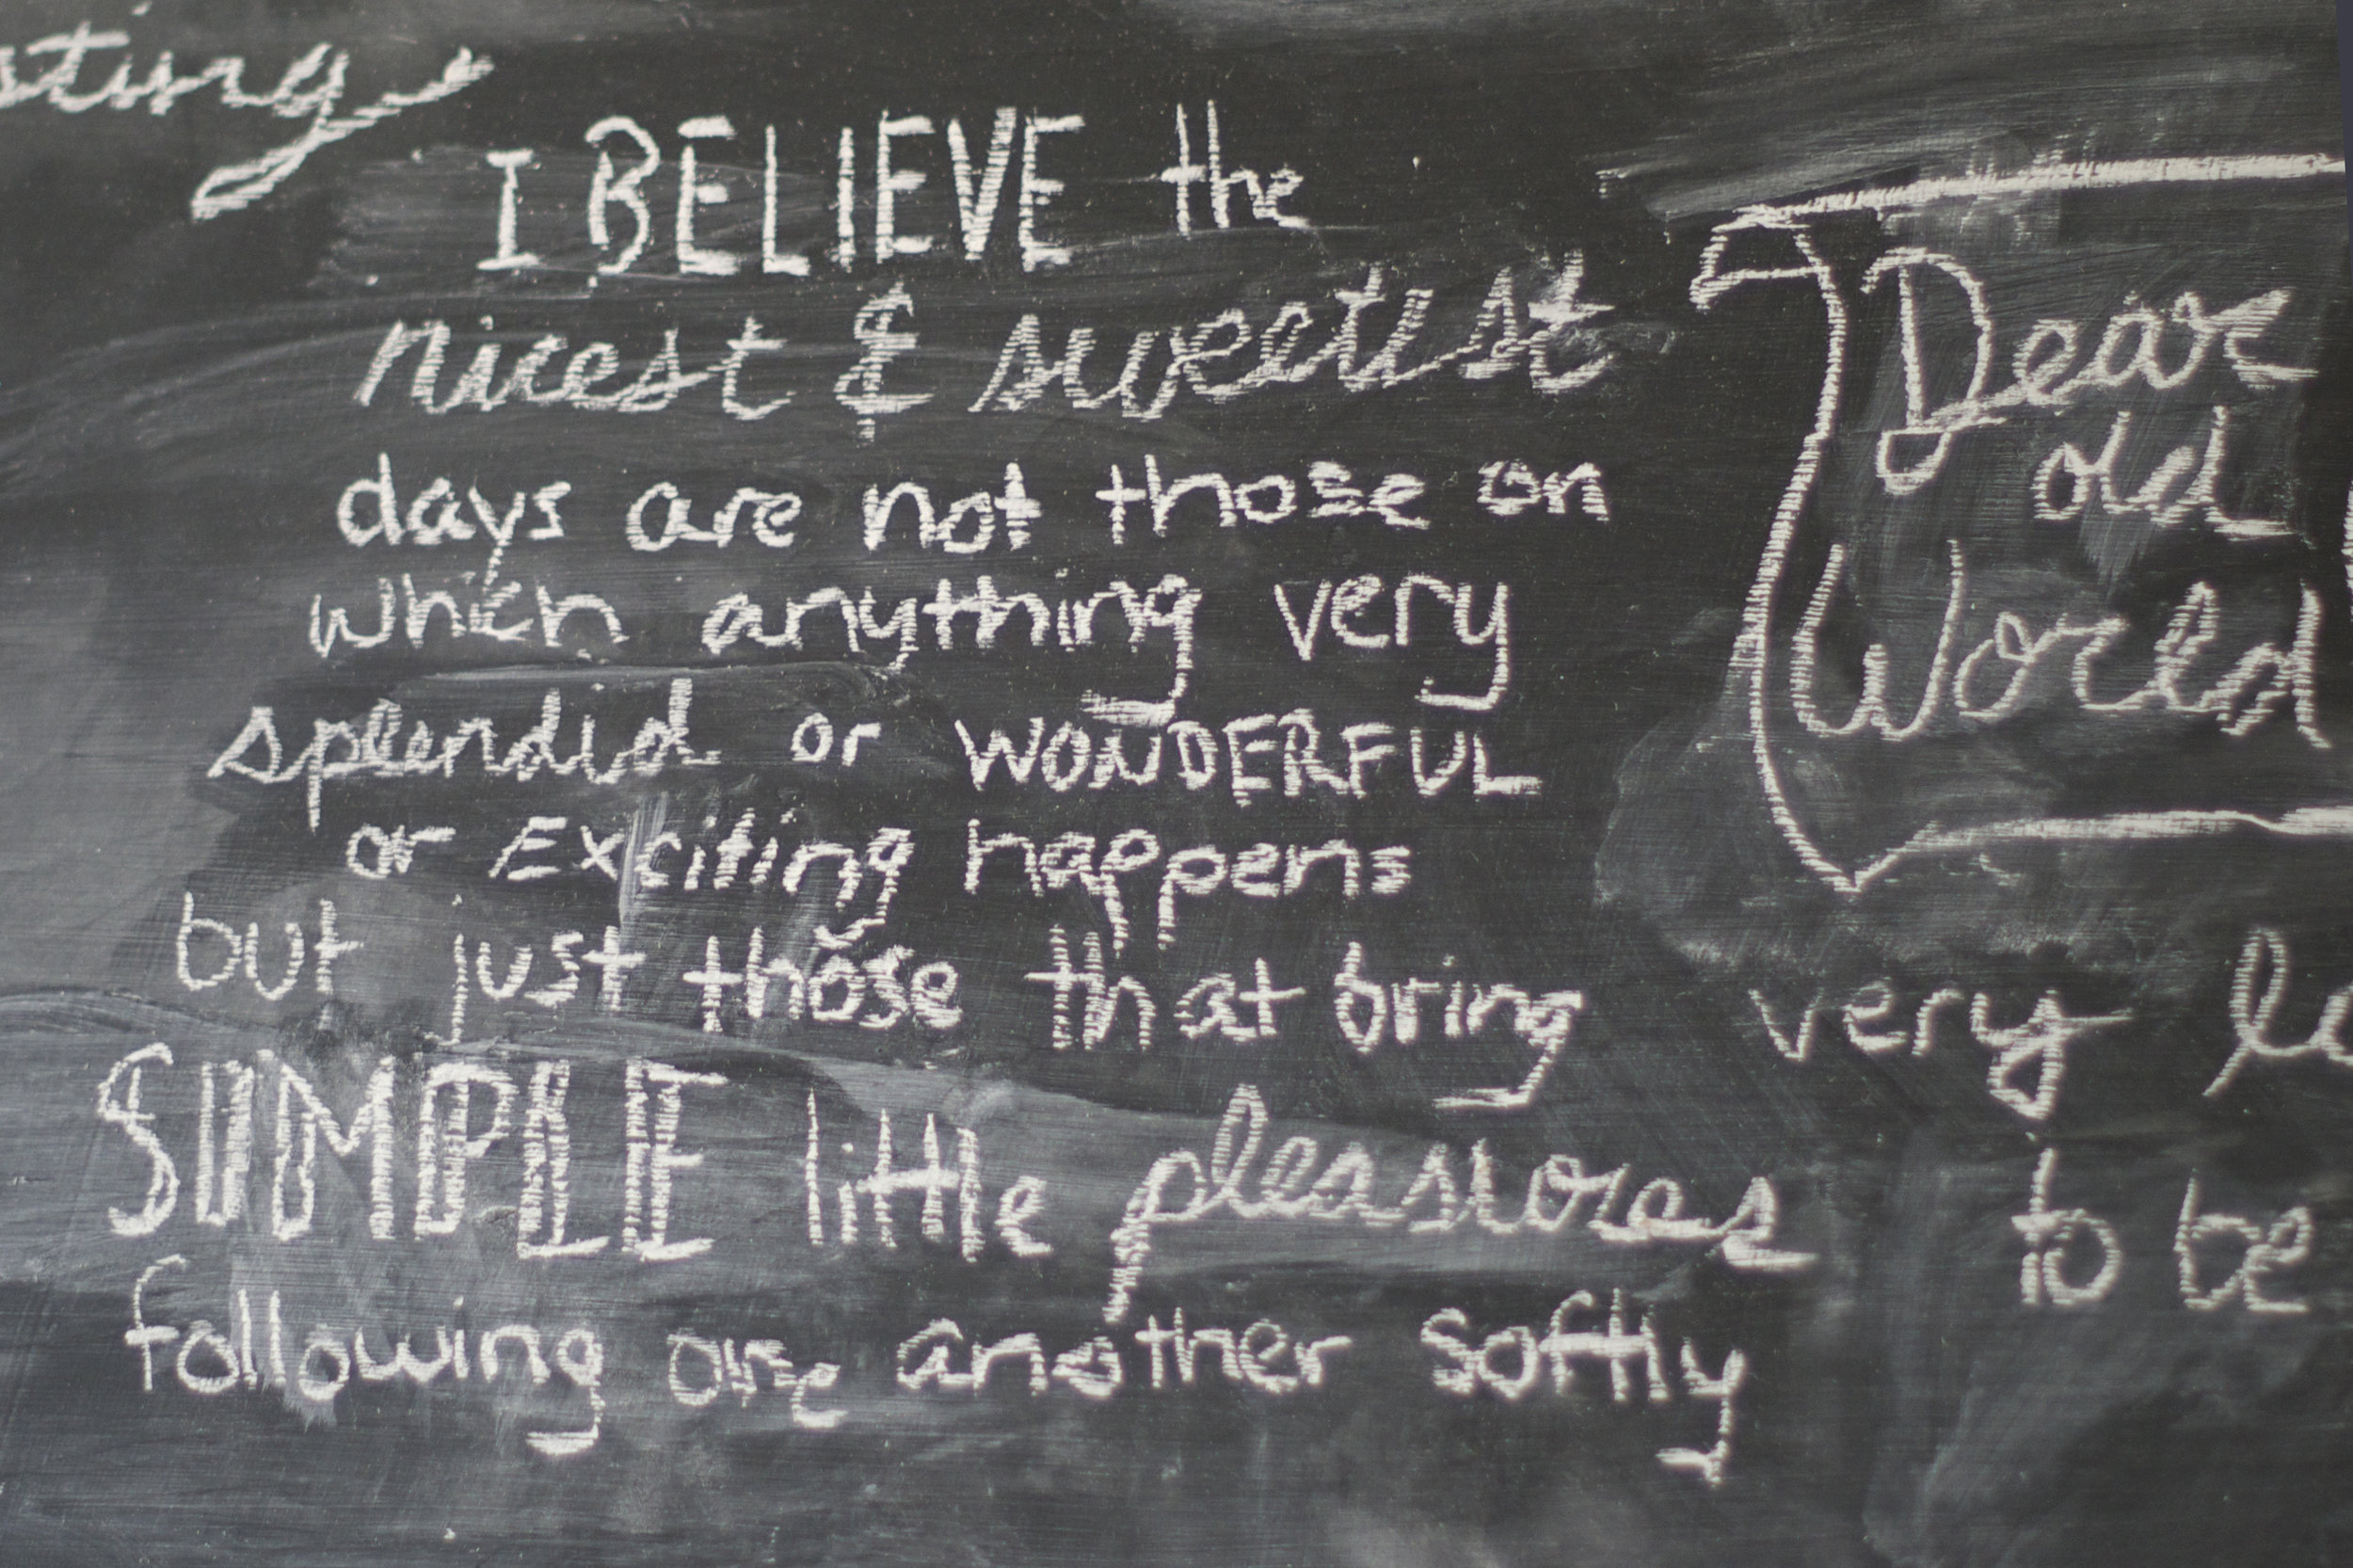 I-believe-quote.jpg